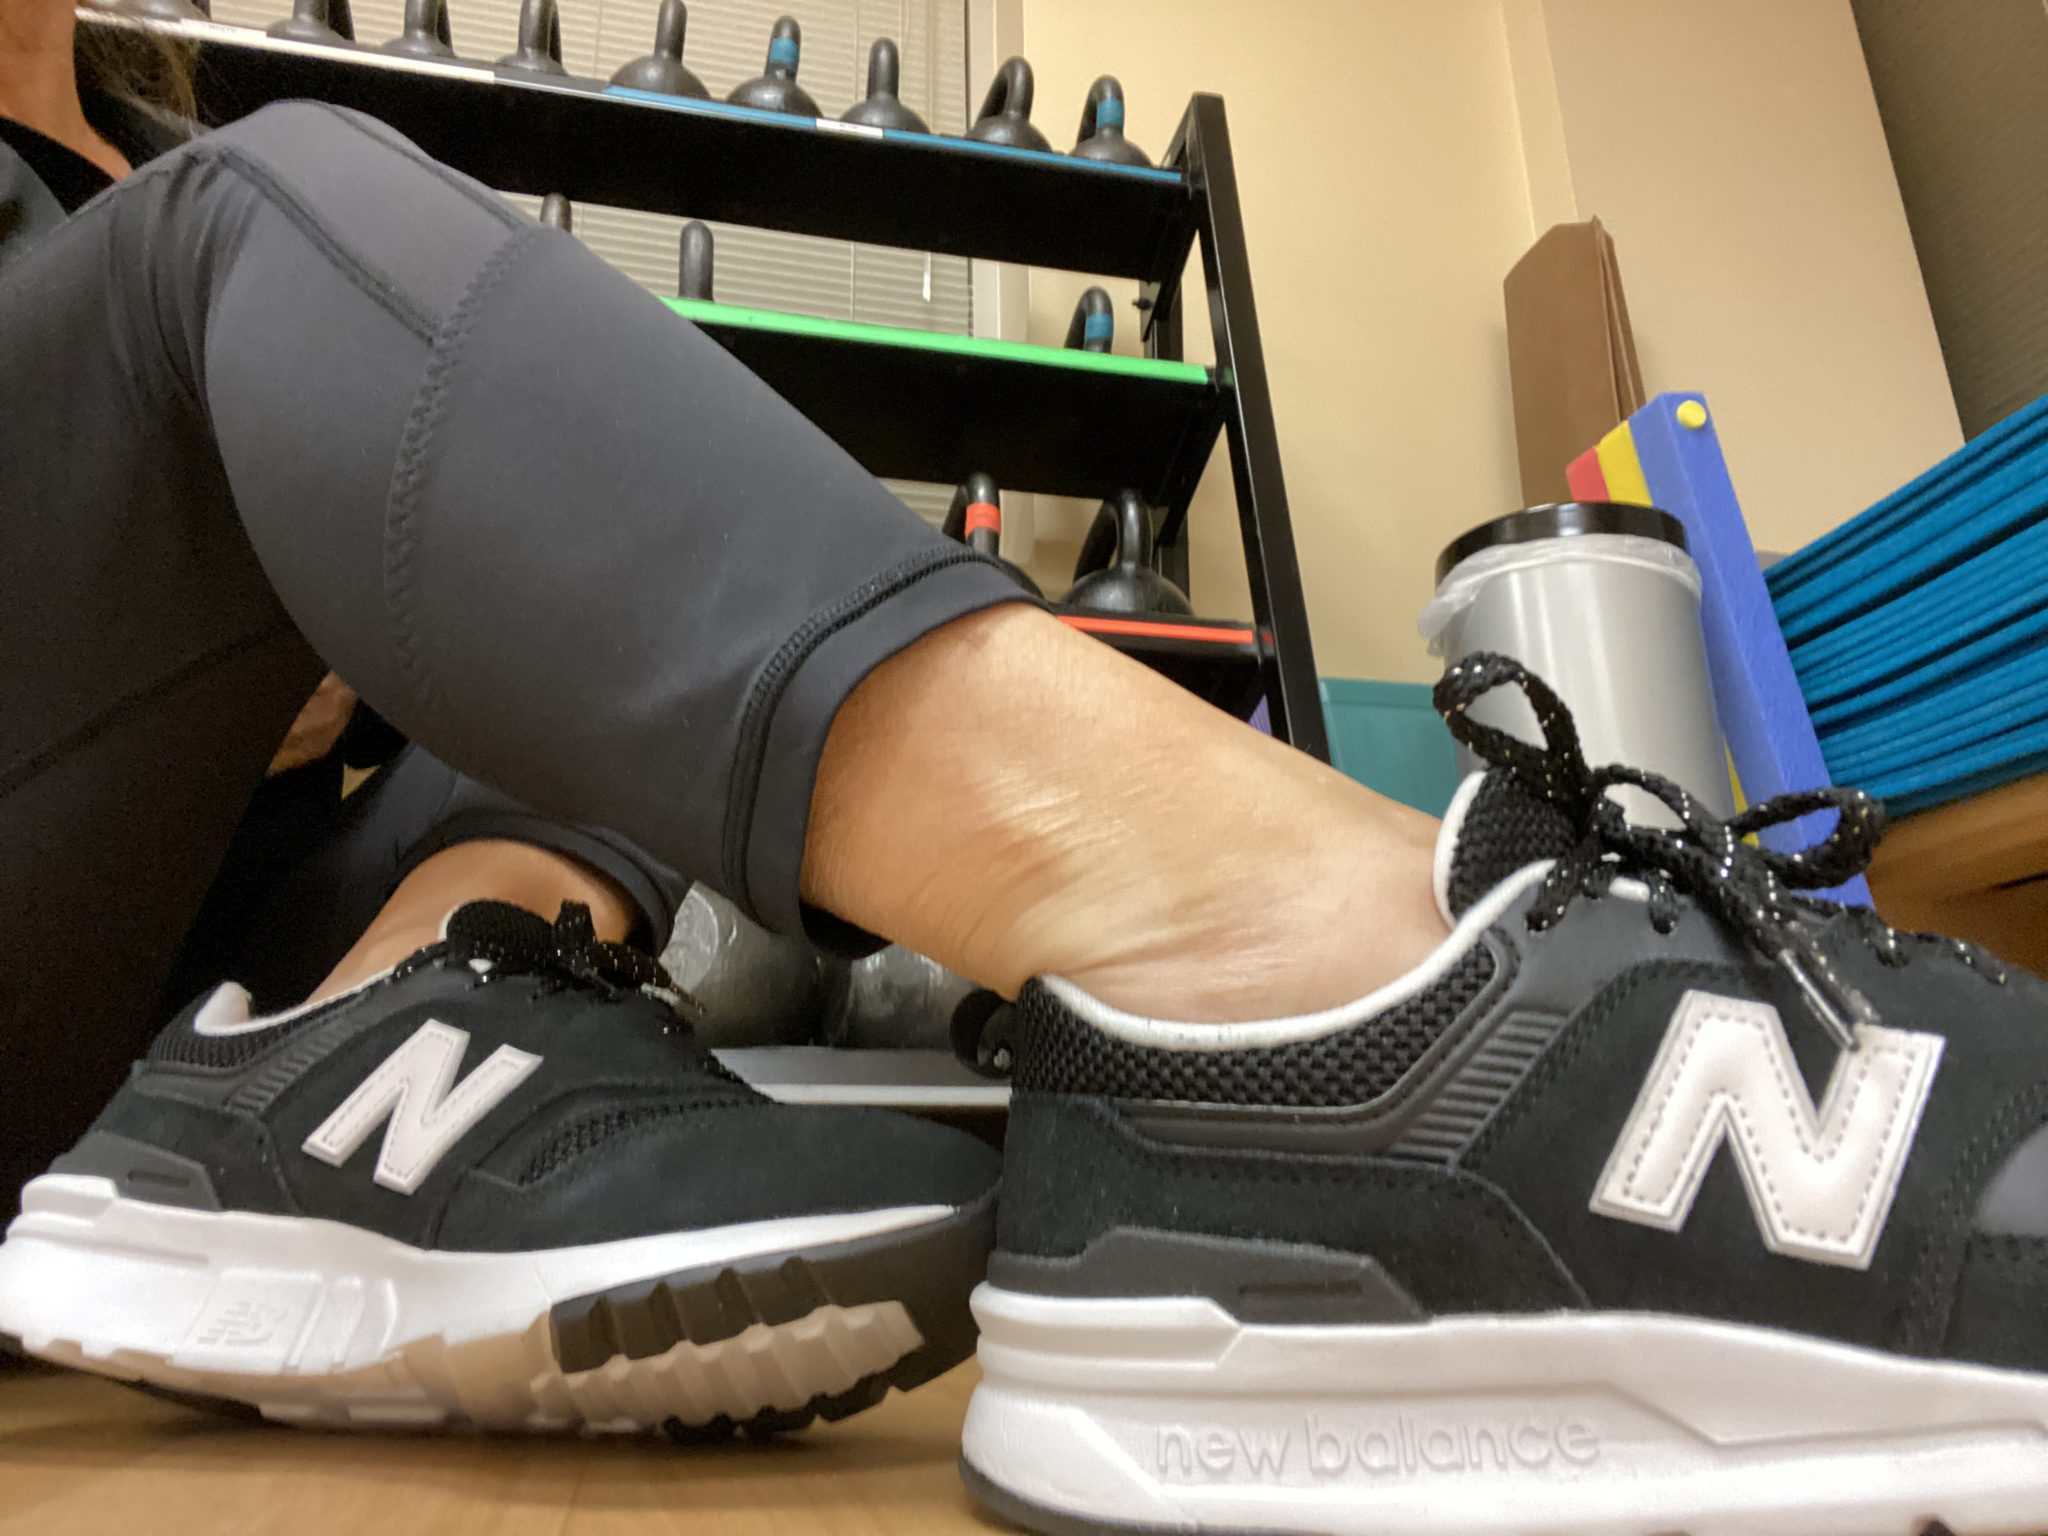 Refinamiento Muñeco de peluche desmayarse  Huge Joe's New Balance Outlet Sale with Free Shipping- See Why I Am So  Excited! -